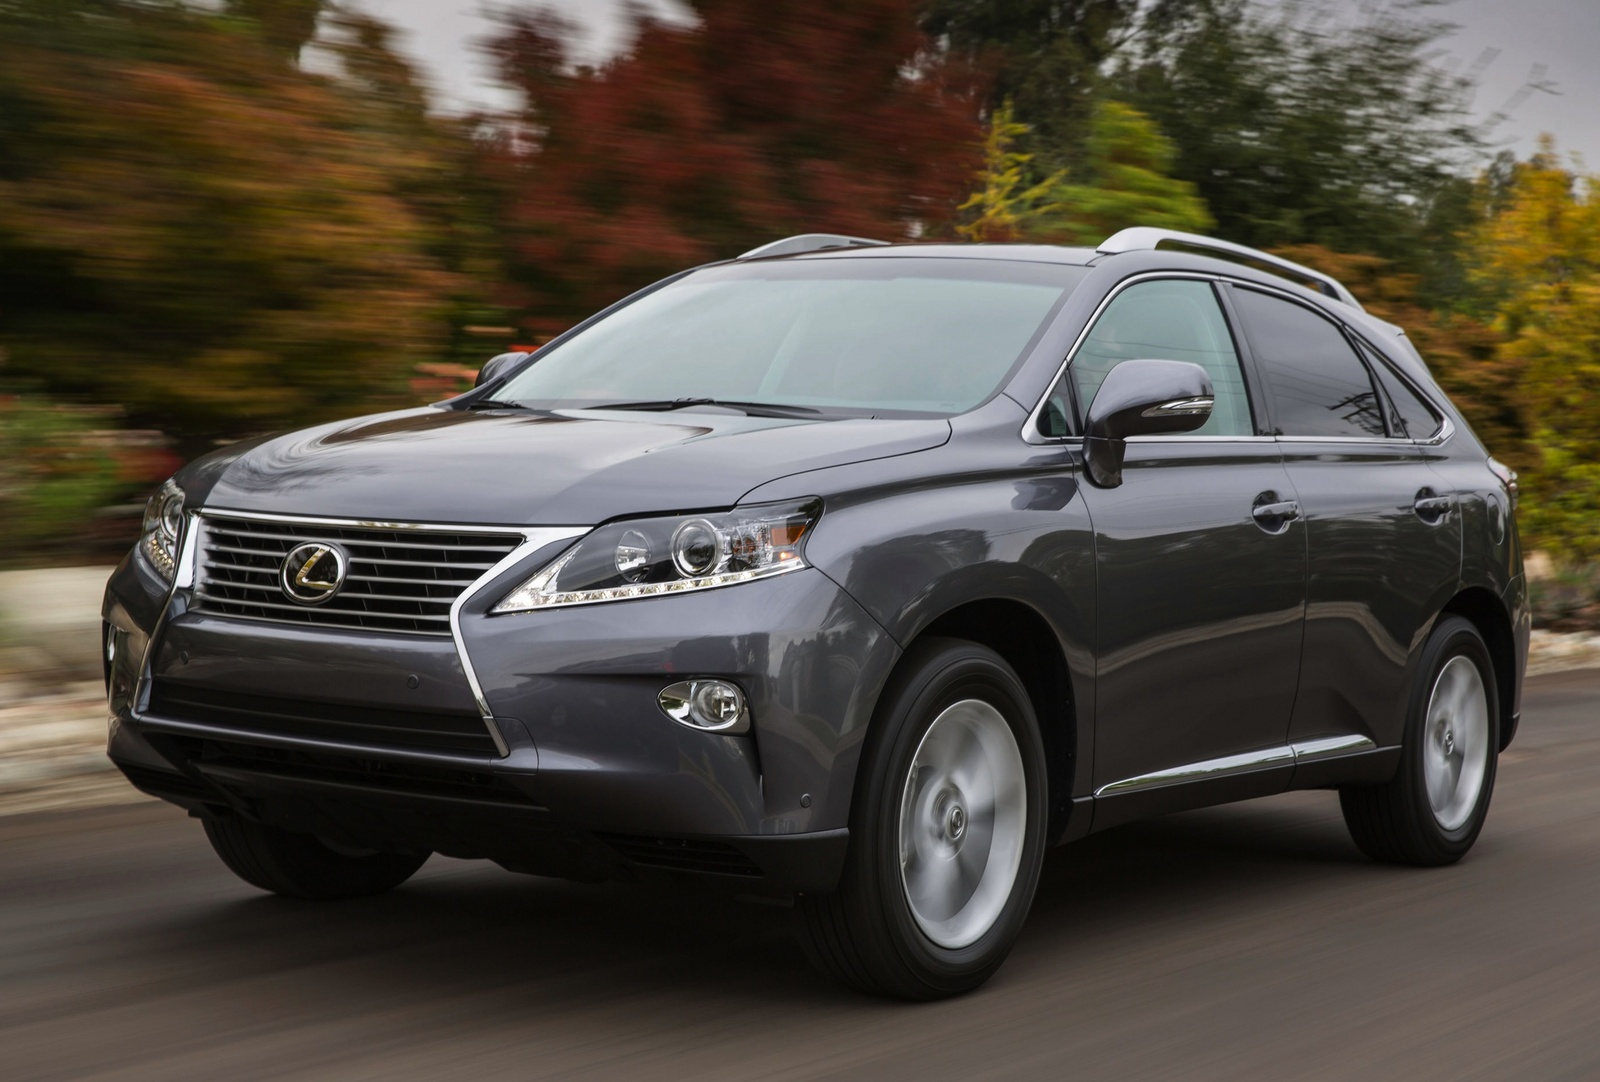 2014 lexus rx 350 image 9. Black Bedroom Furniture Sets. Home Design Ideas